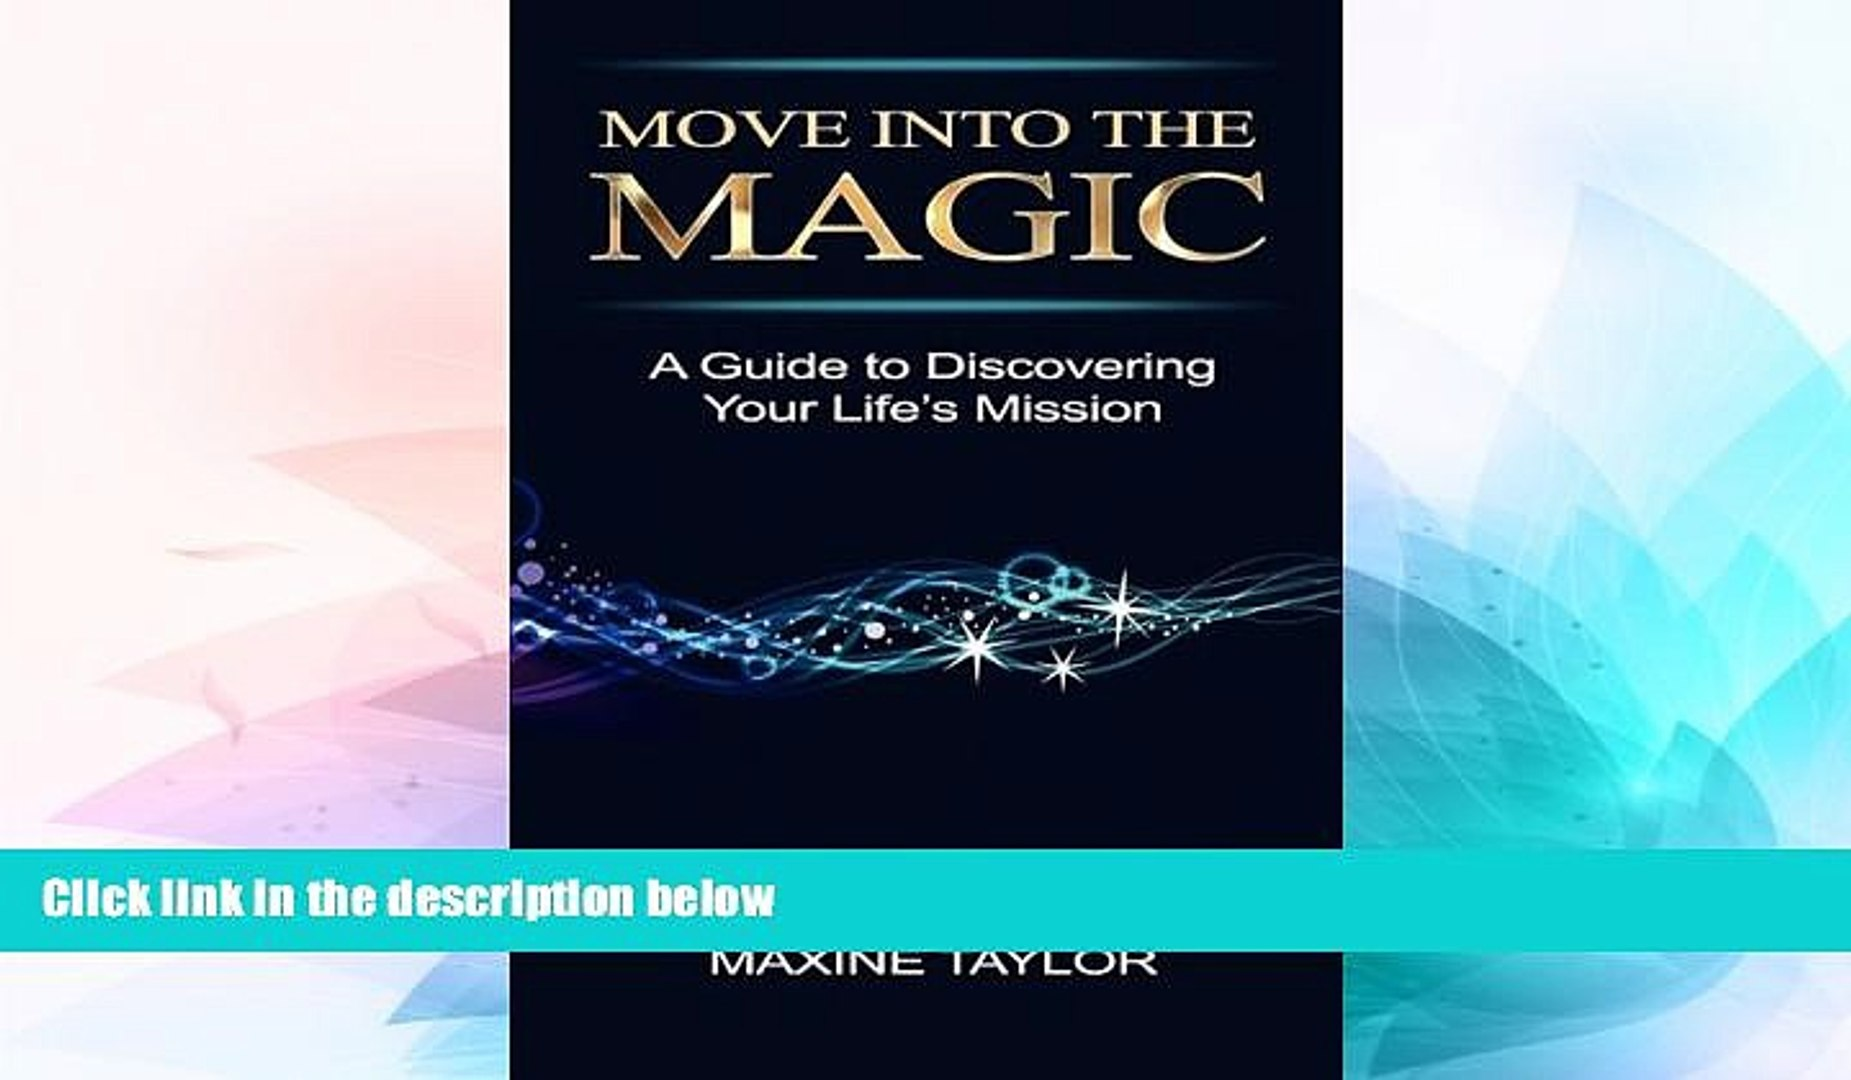 Move into the Magic